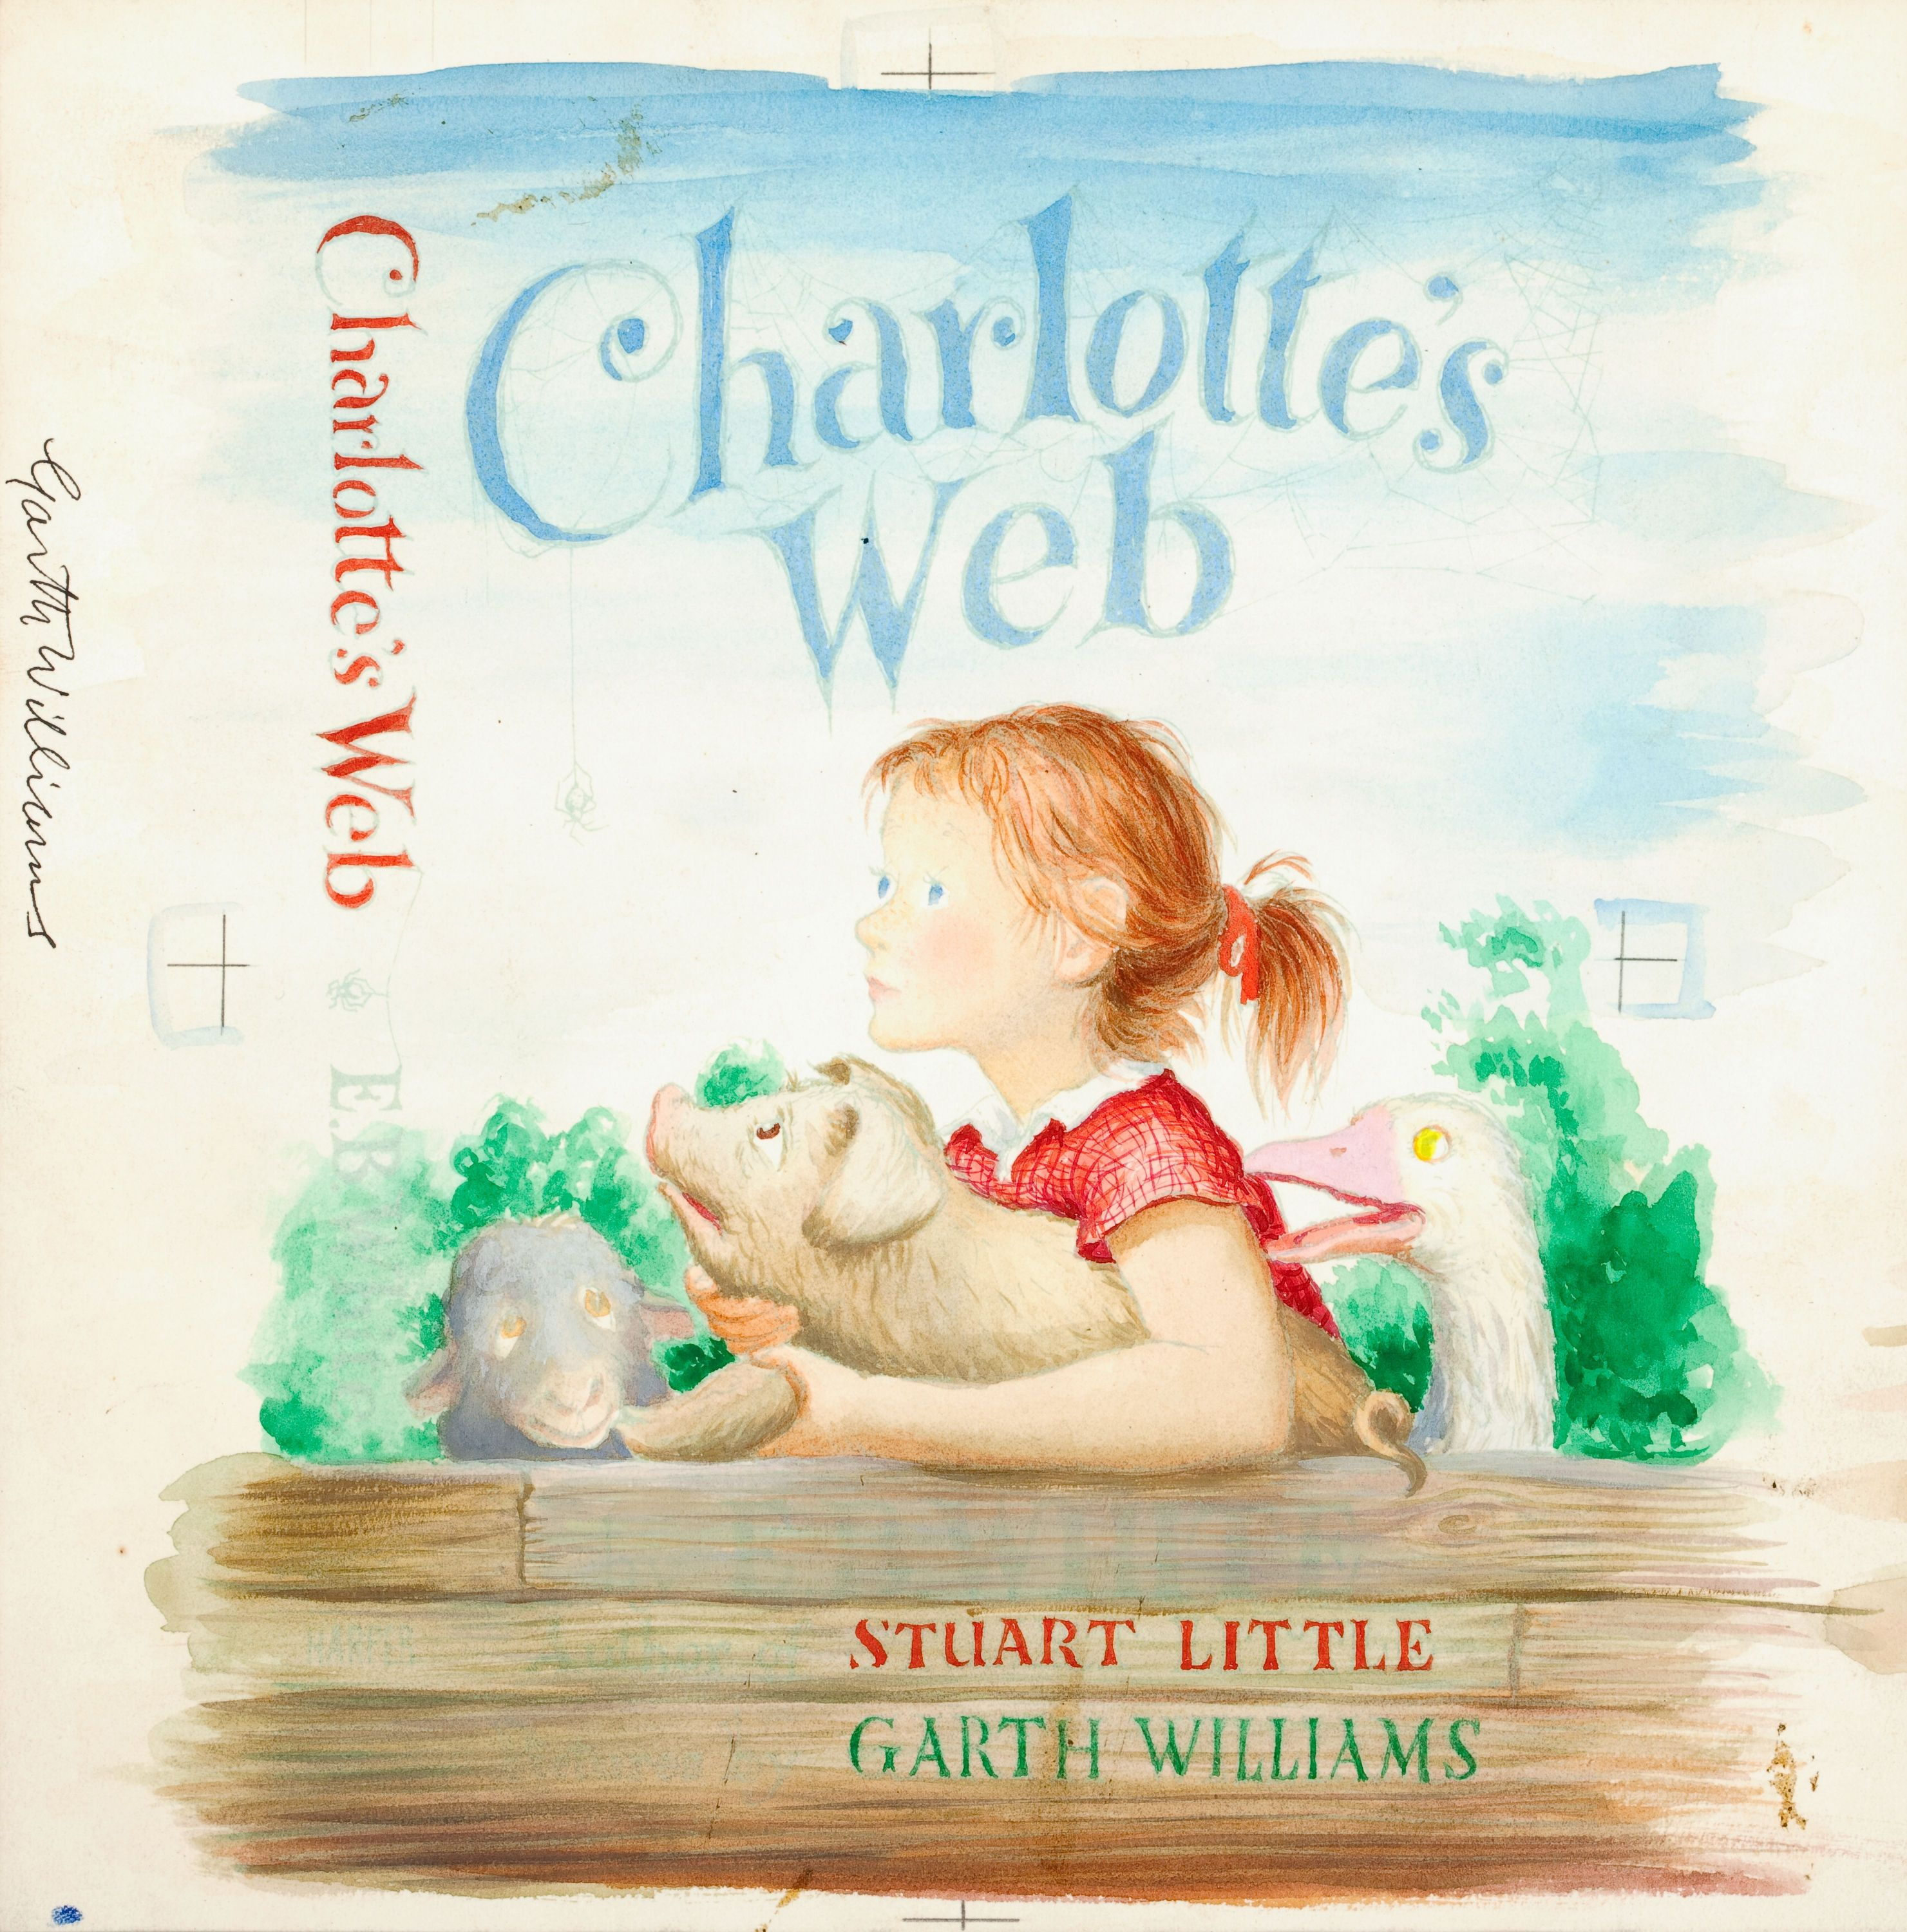 Watercolor book covers - Charlotte S Web Book Cover Art Sells For 155 350 Book Cover Art Cover Art And Book Covers